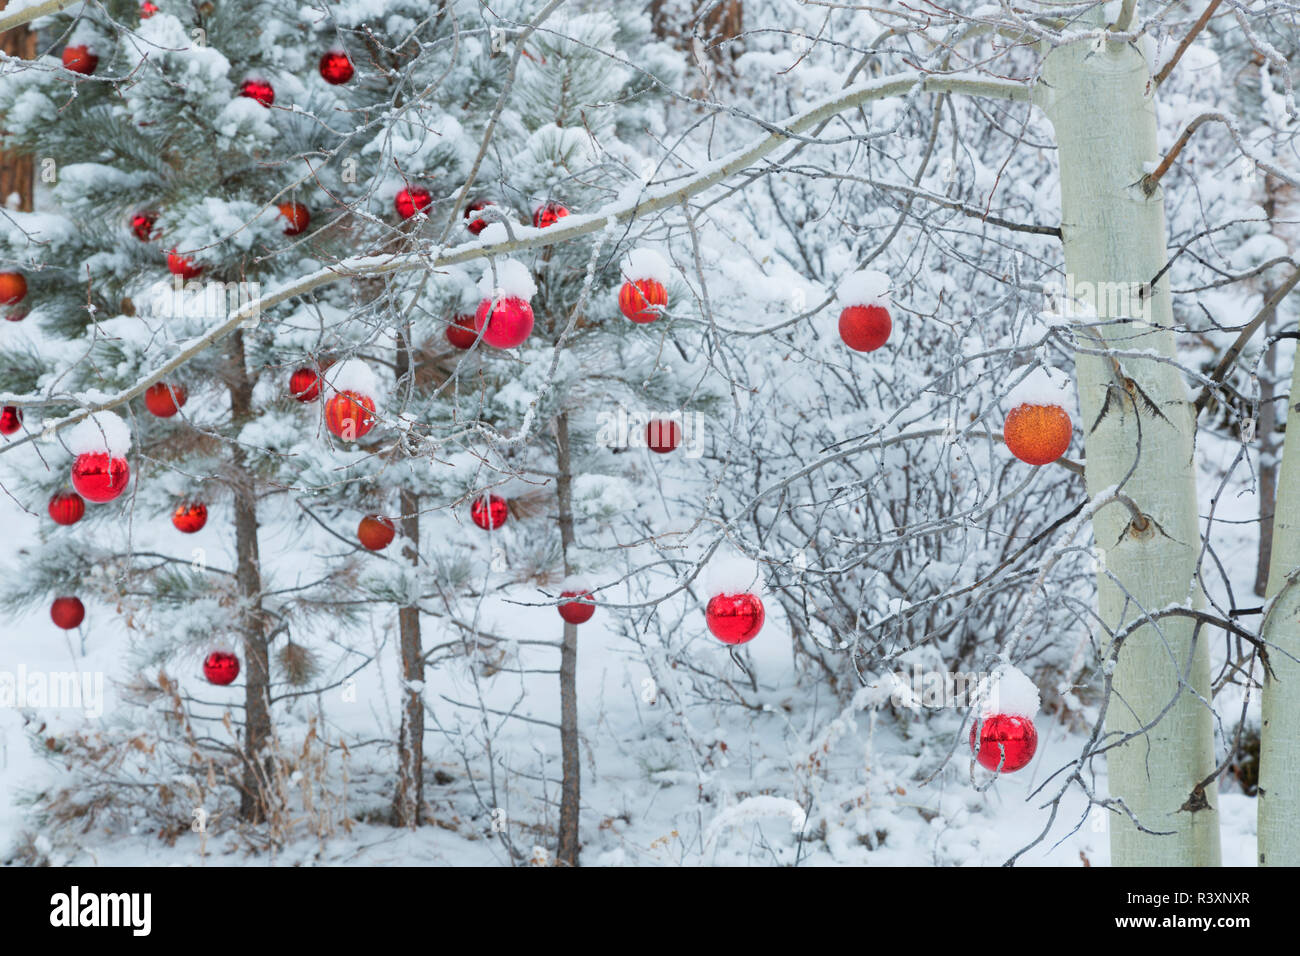 USA, Colorado, Woodland Park. Fresh snow and red ornaments on trees. Credit as: Don Grall / Jaynes Gallery / DanitaDelimont. com - Stock Image